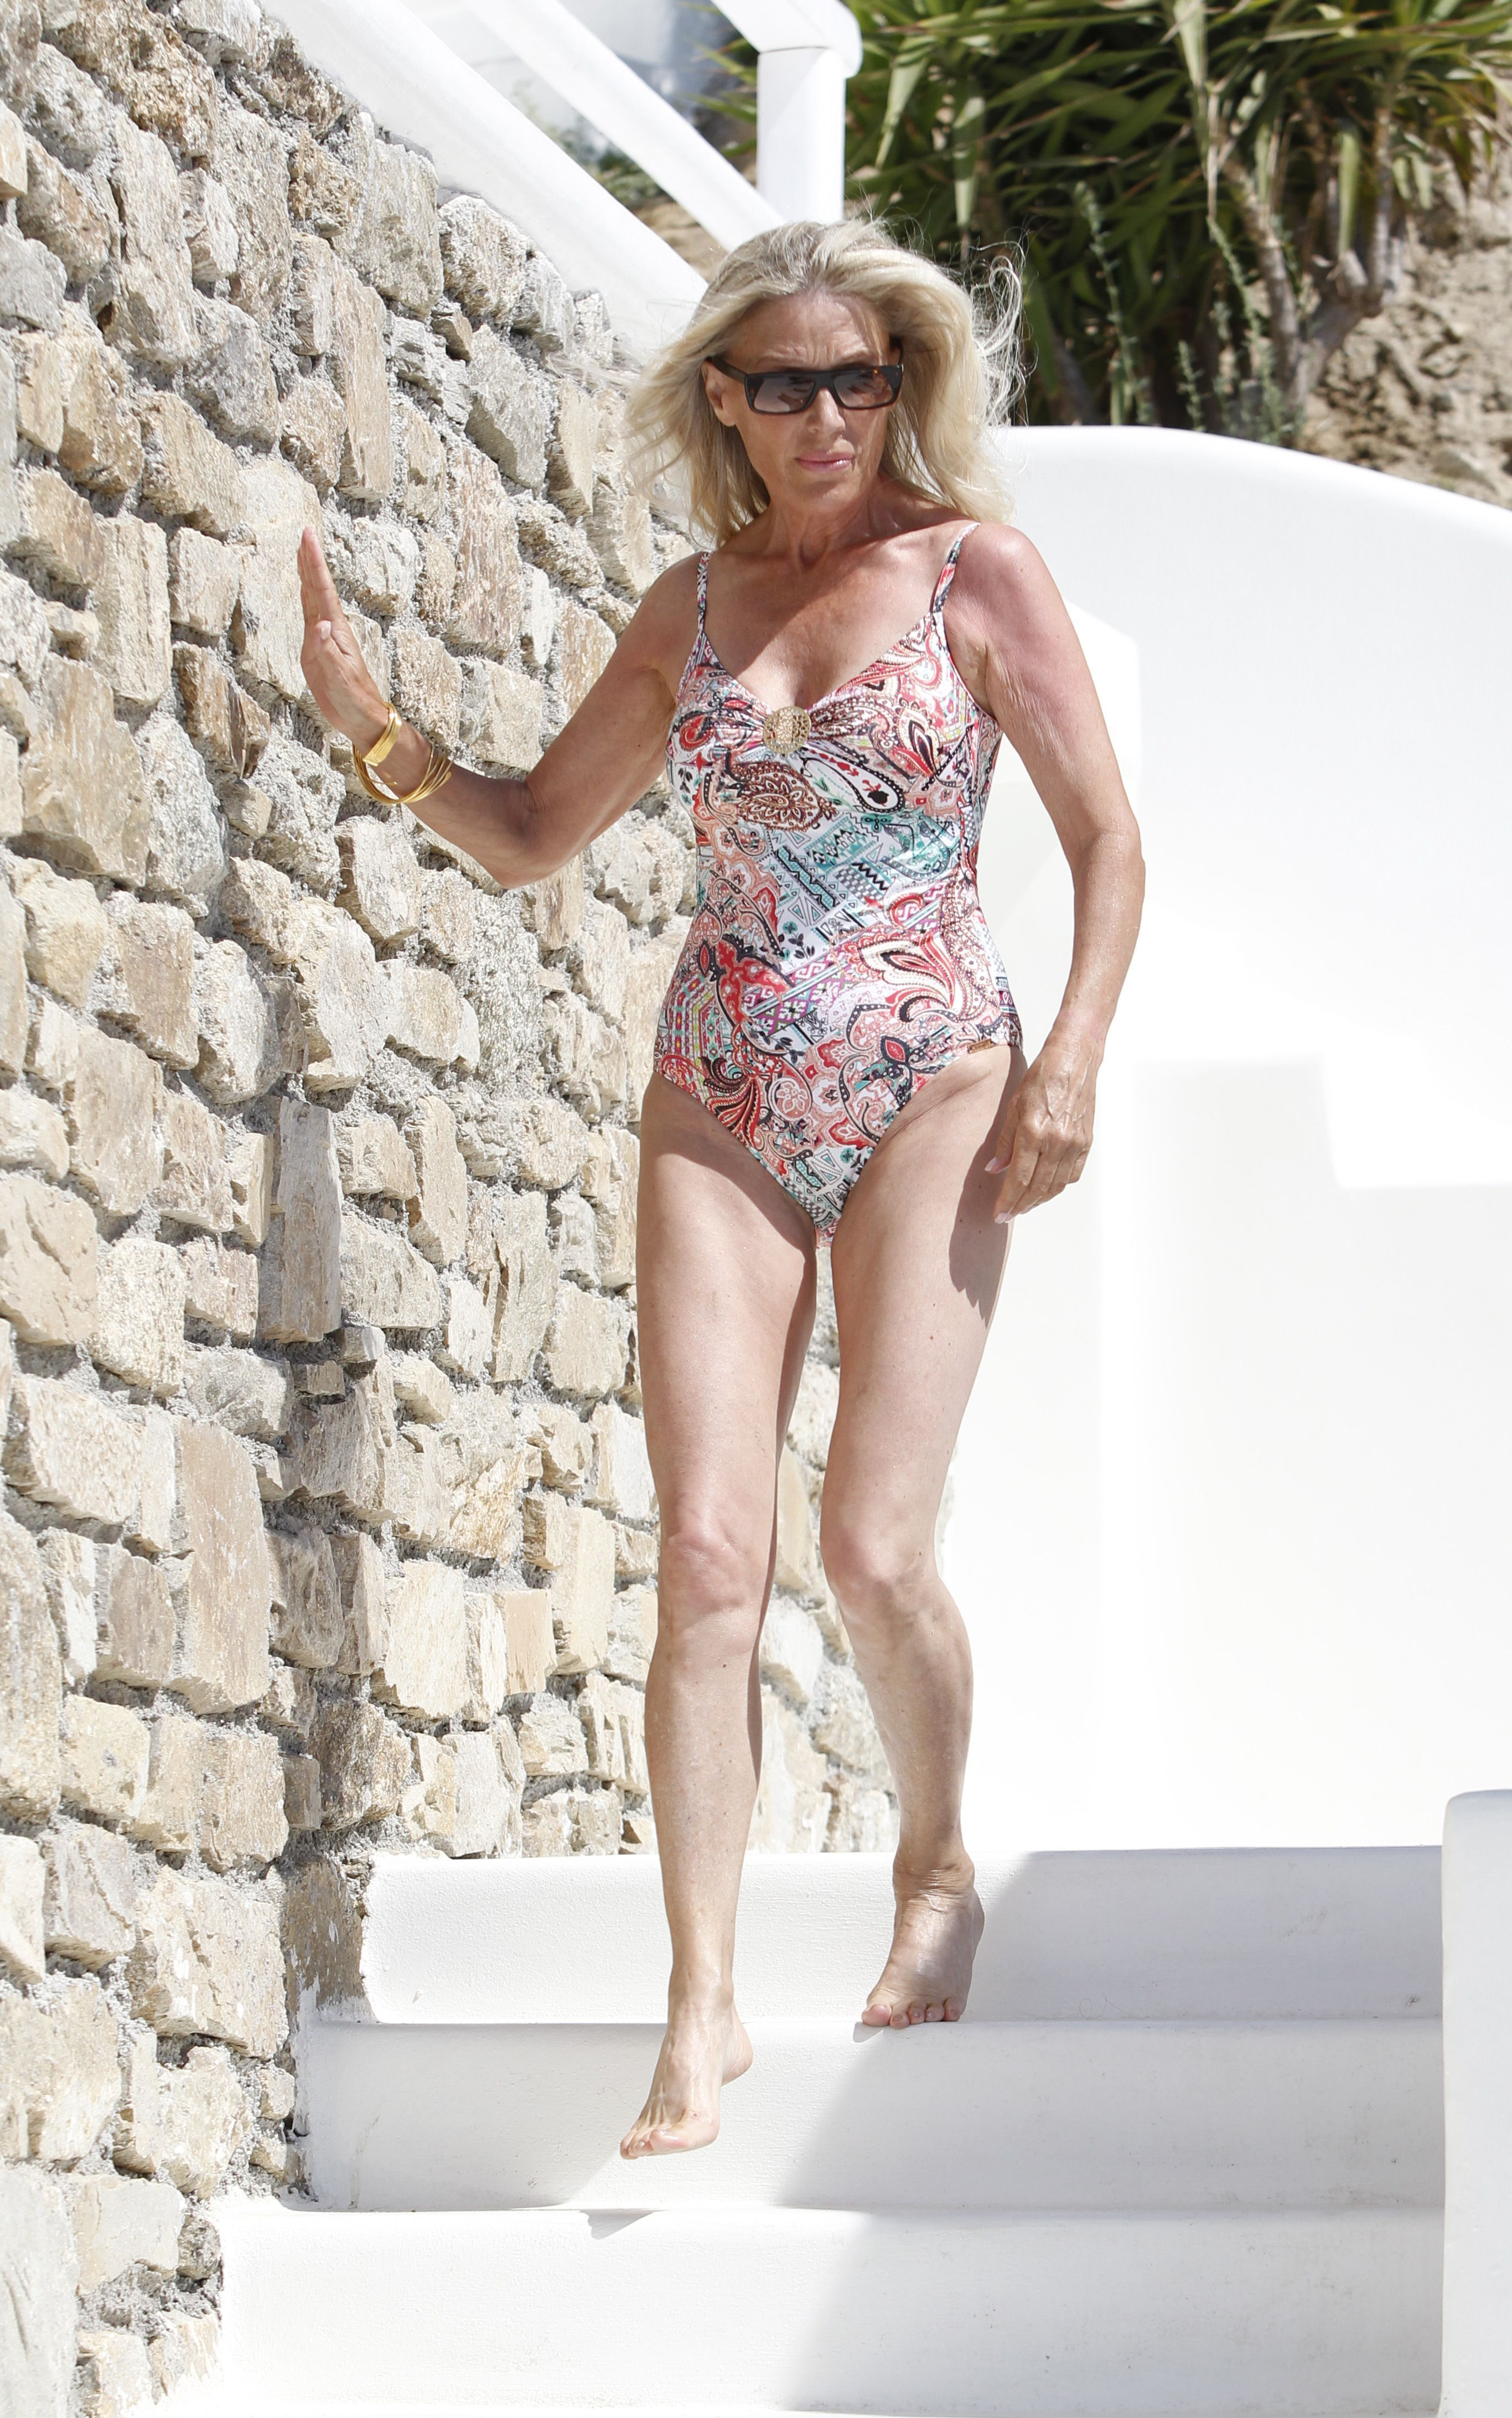 Feet Nell McAndrew nudes (59 photos), Pussy, Fappening, Boobs, braless 2015